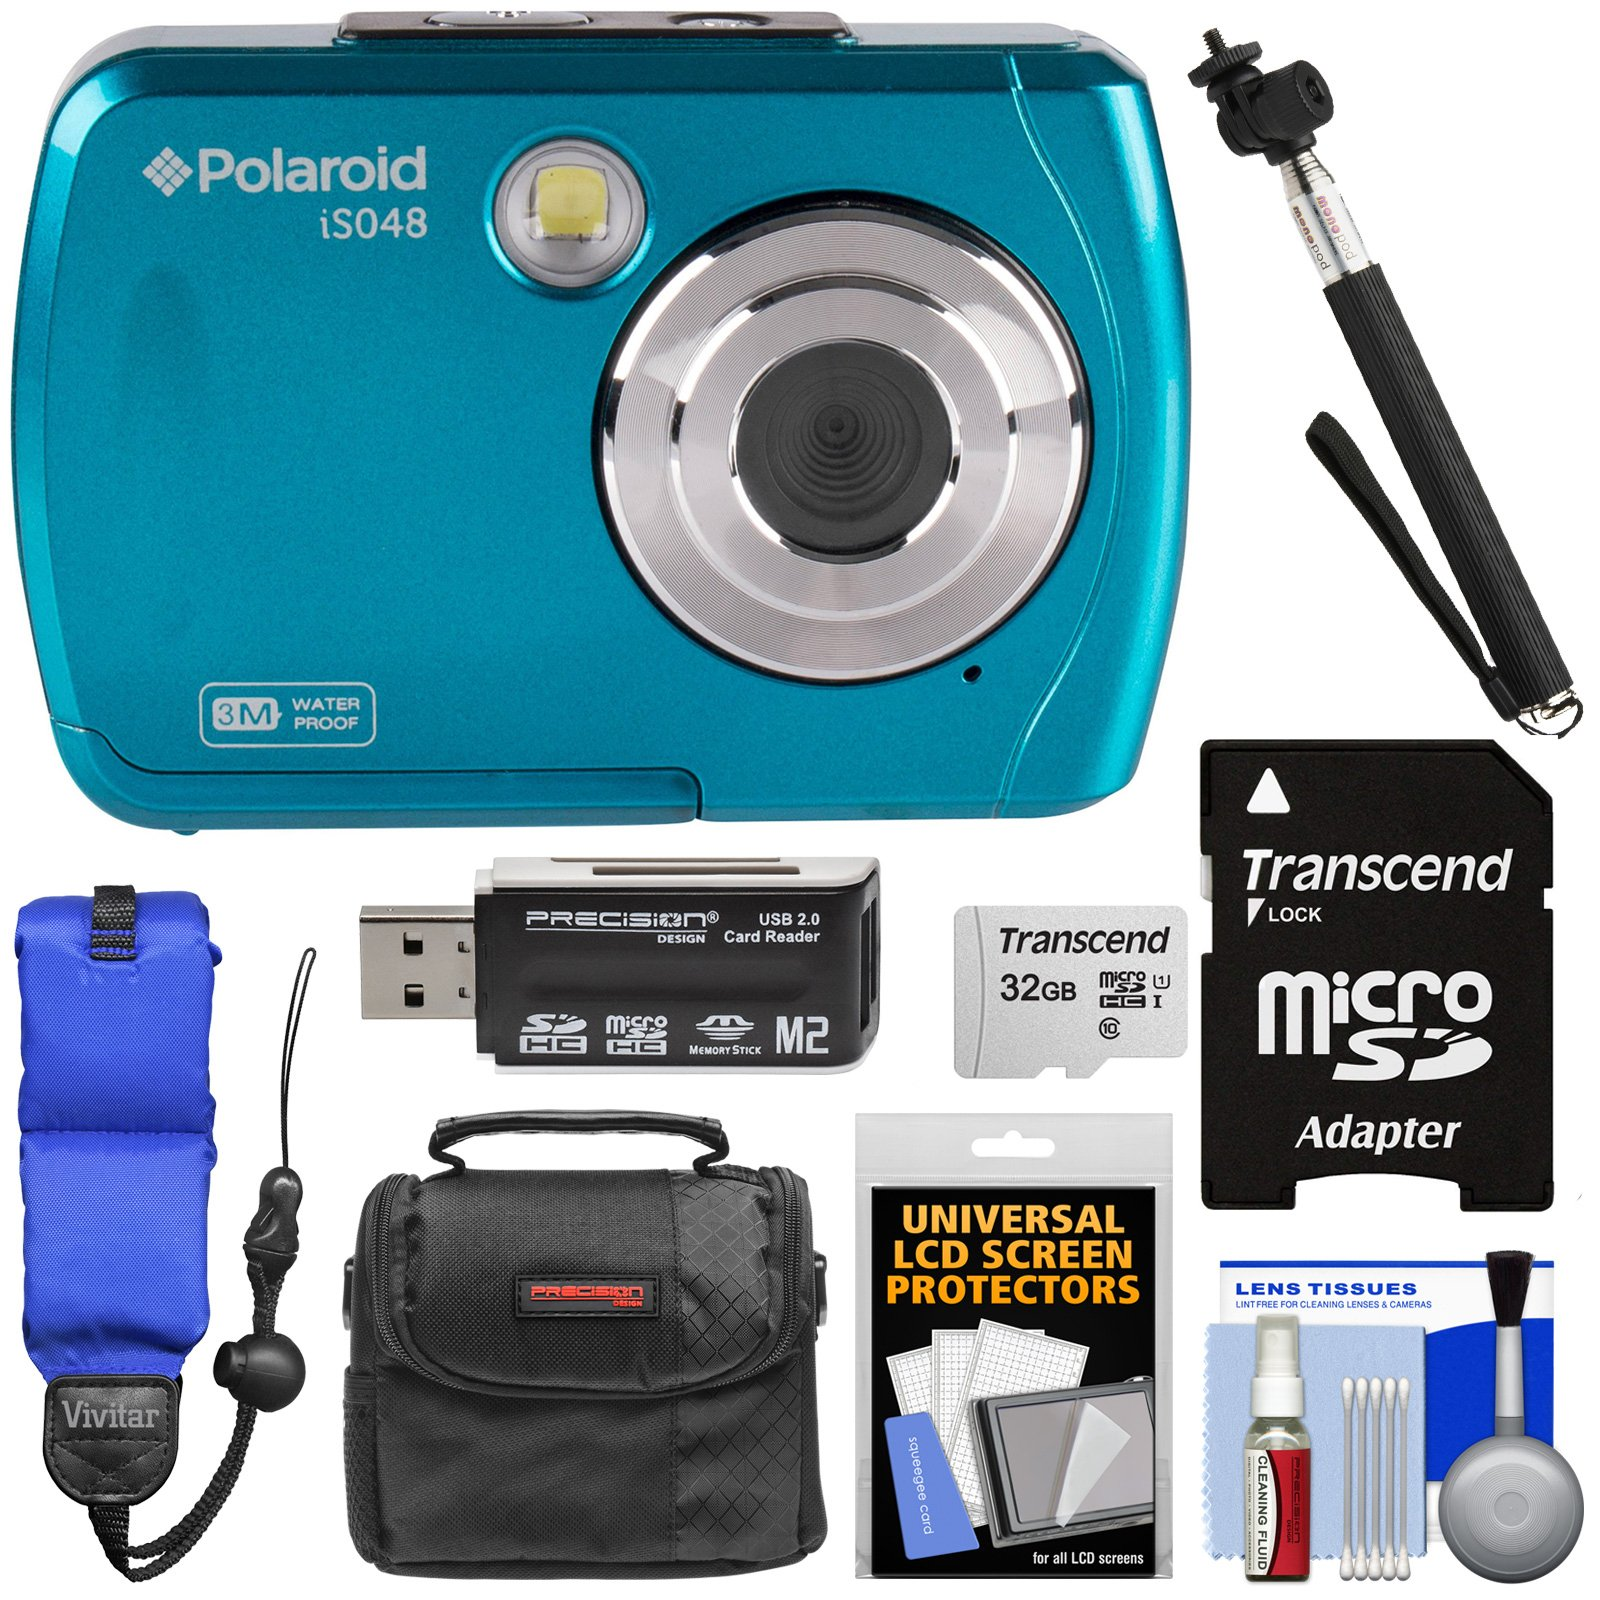 Polaroid iS048 Waterproof Digital Camera (Teal) with 32GB Card + Case + Selfie Stick + Float Strap + Kit by Polaroid